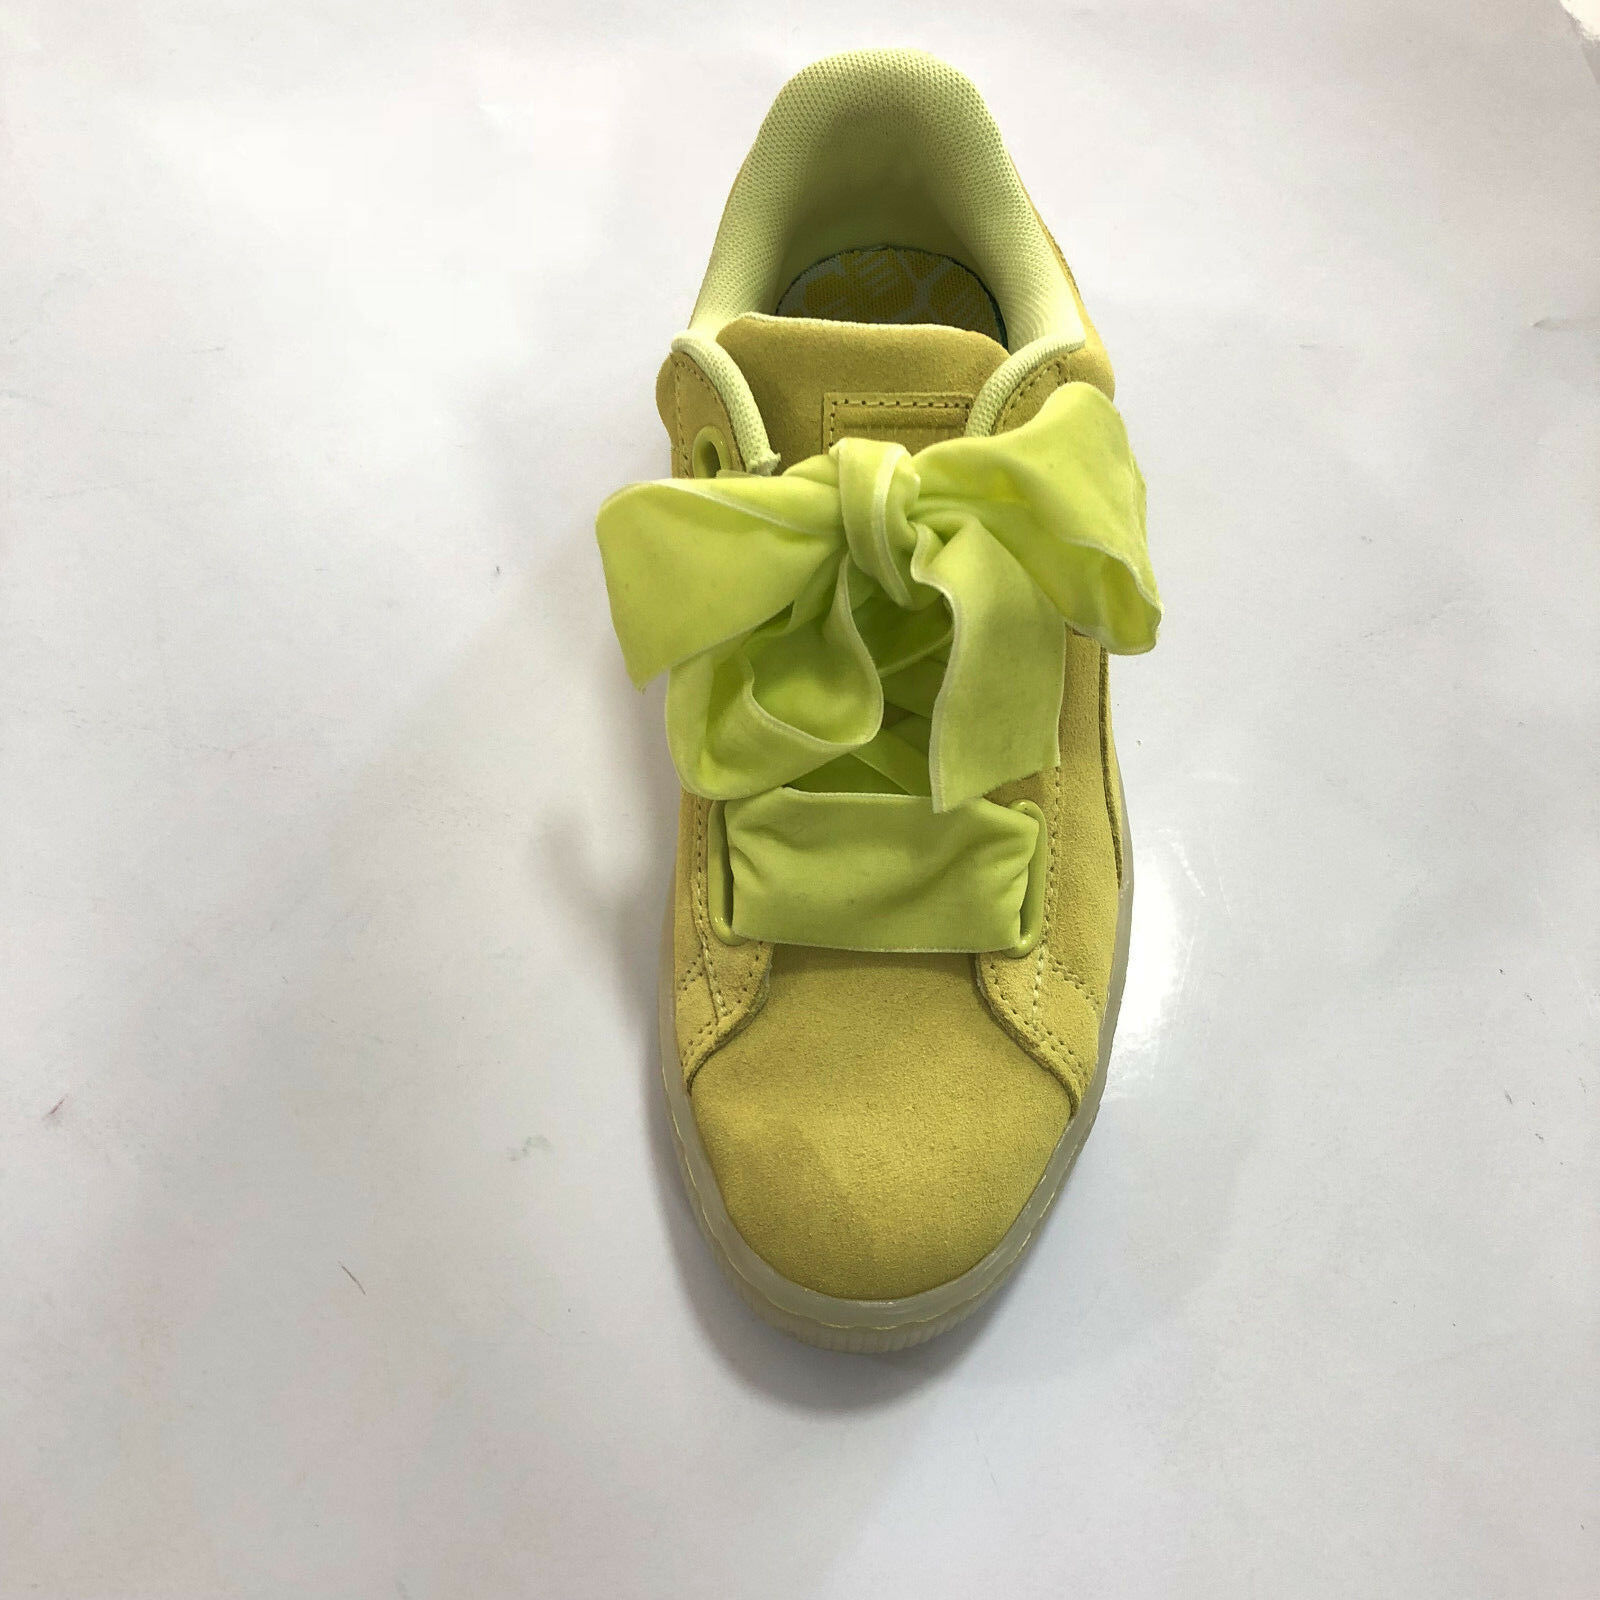 Zapatos Puma mujer SCONTATE   Suede Heart Reset - Limoncello - 363229